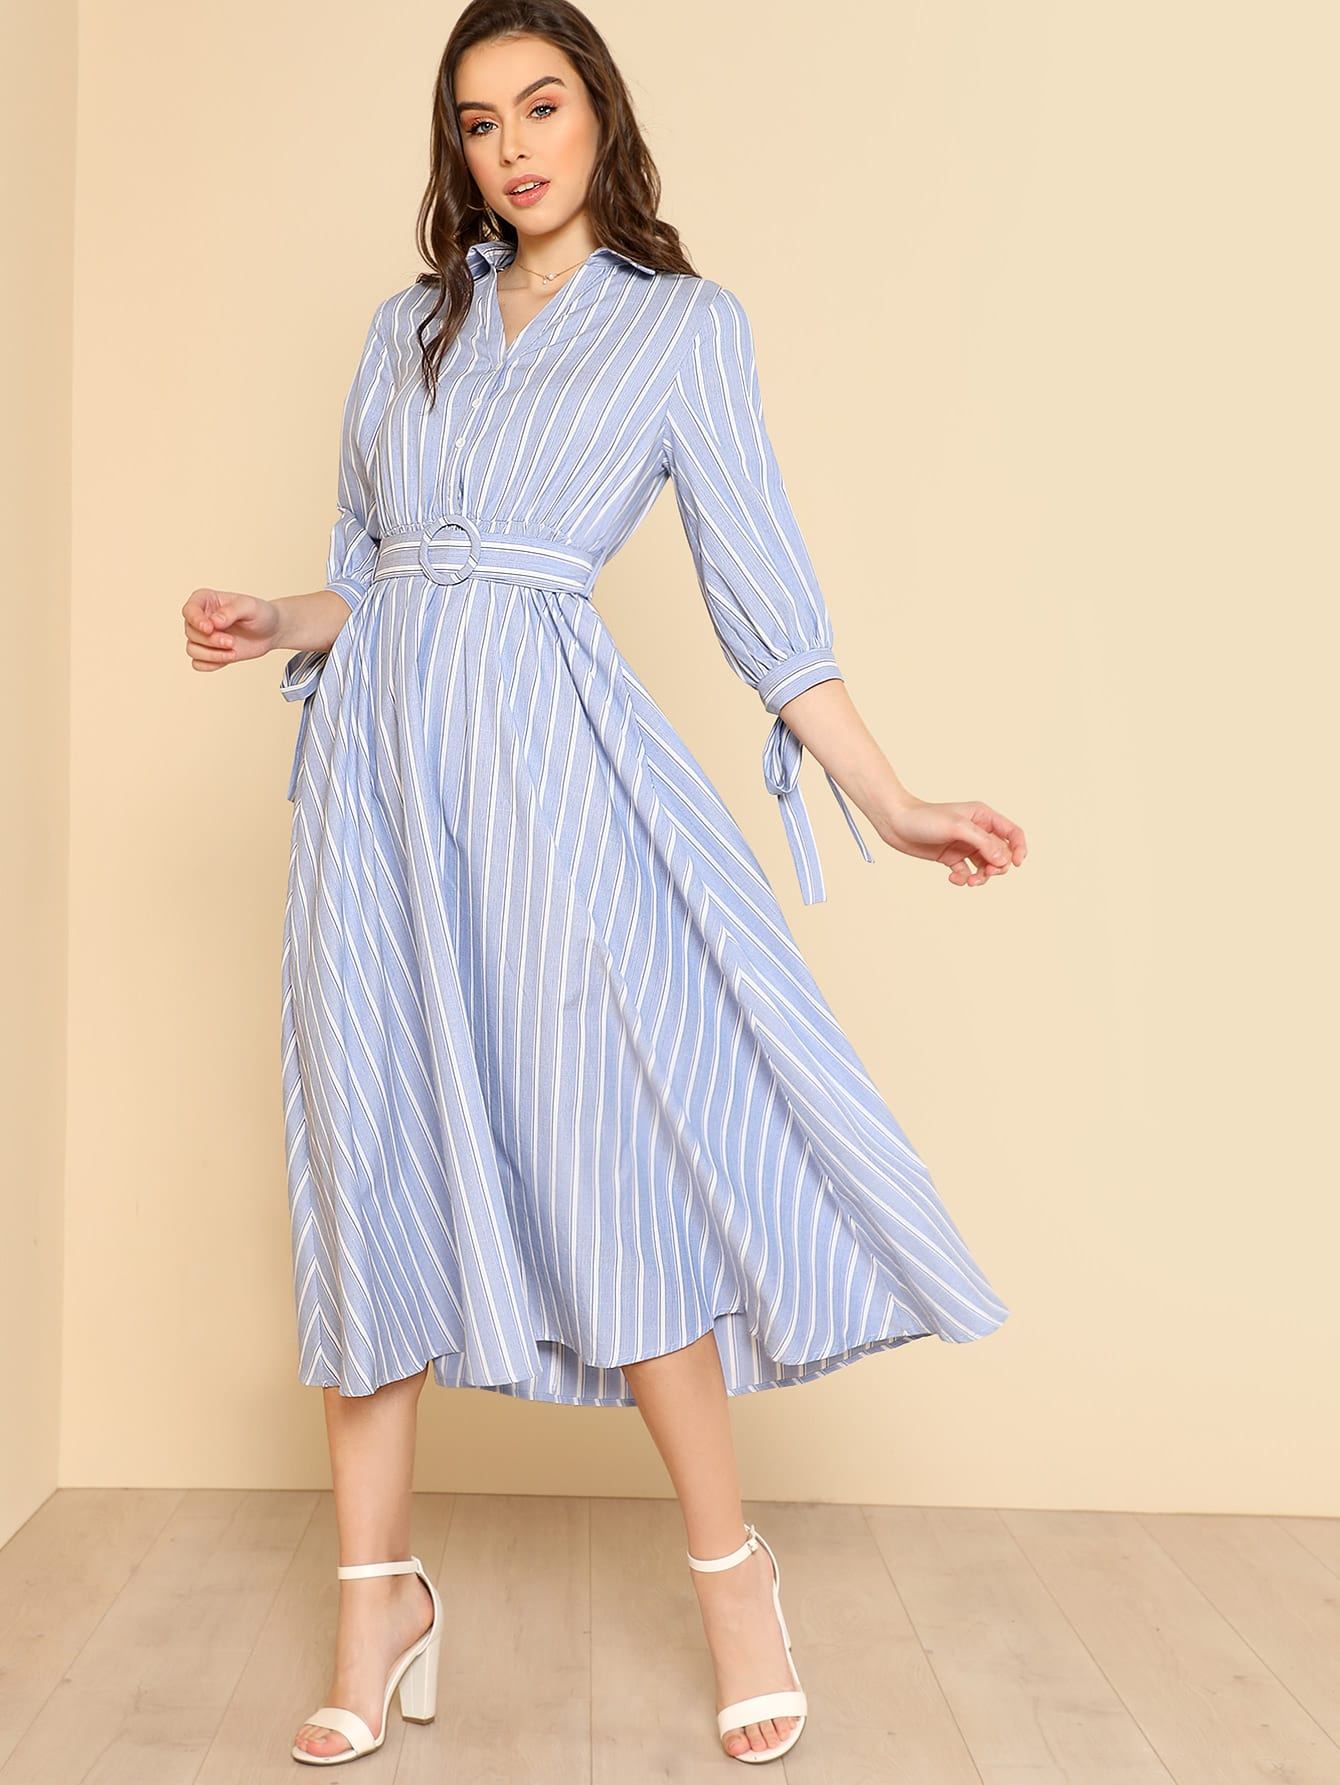 Bow Tied Cuff Striped Shirt Dress contrast collar bow tied detail striped dress